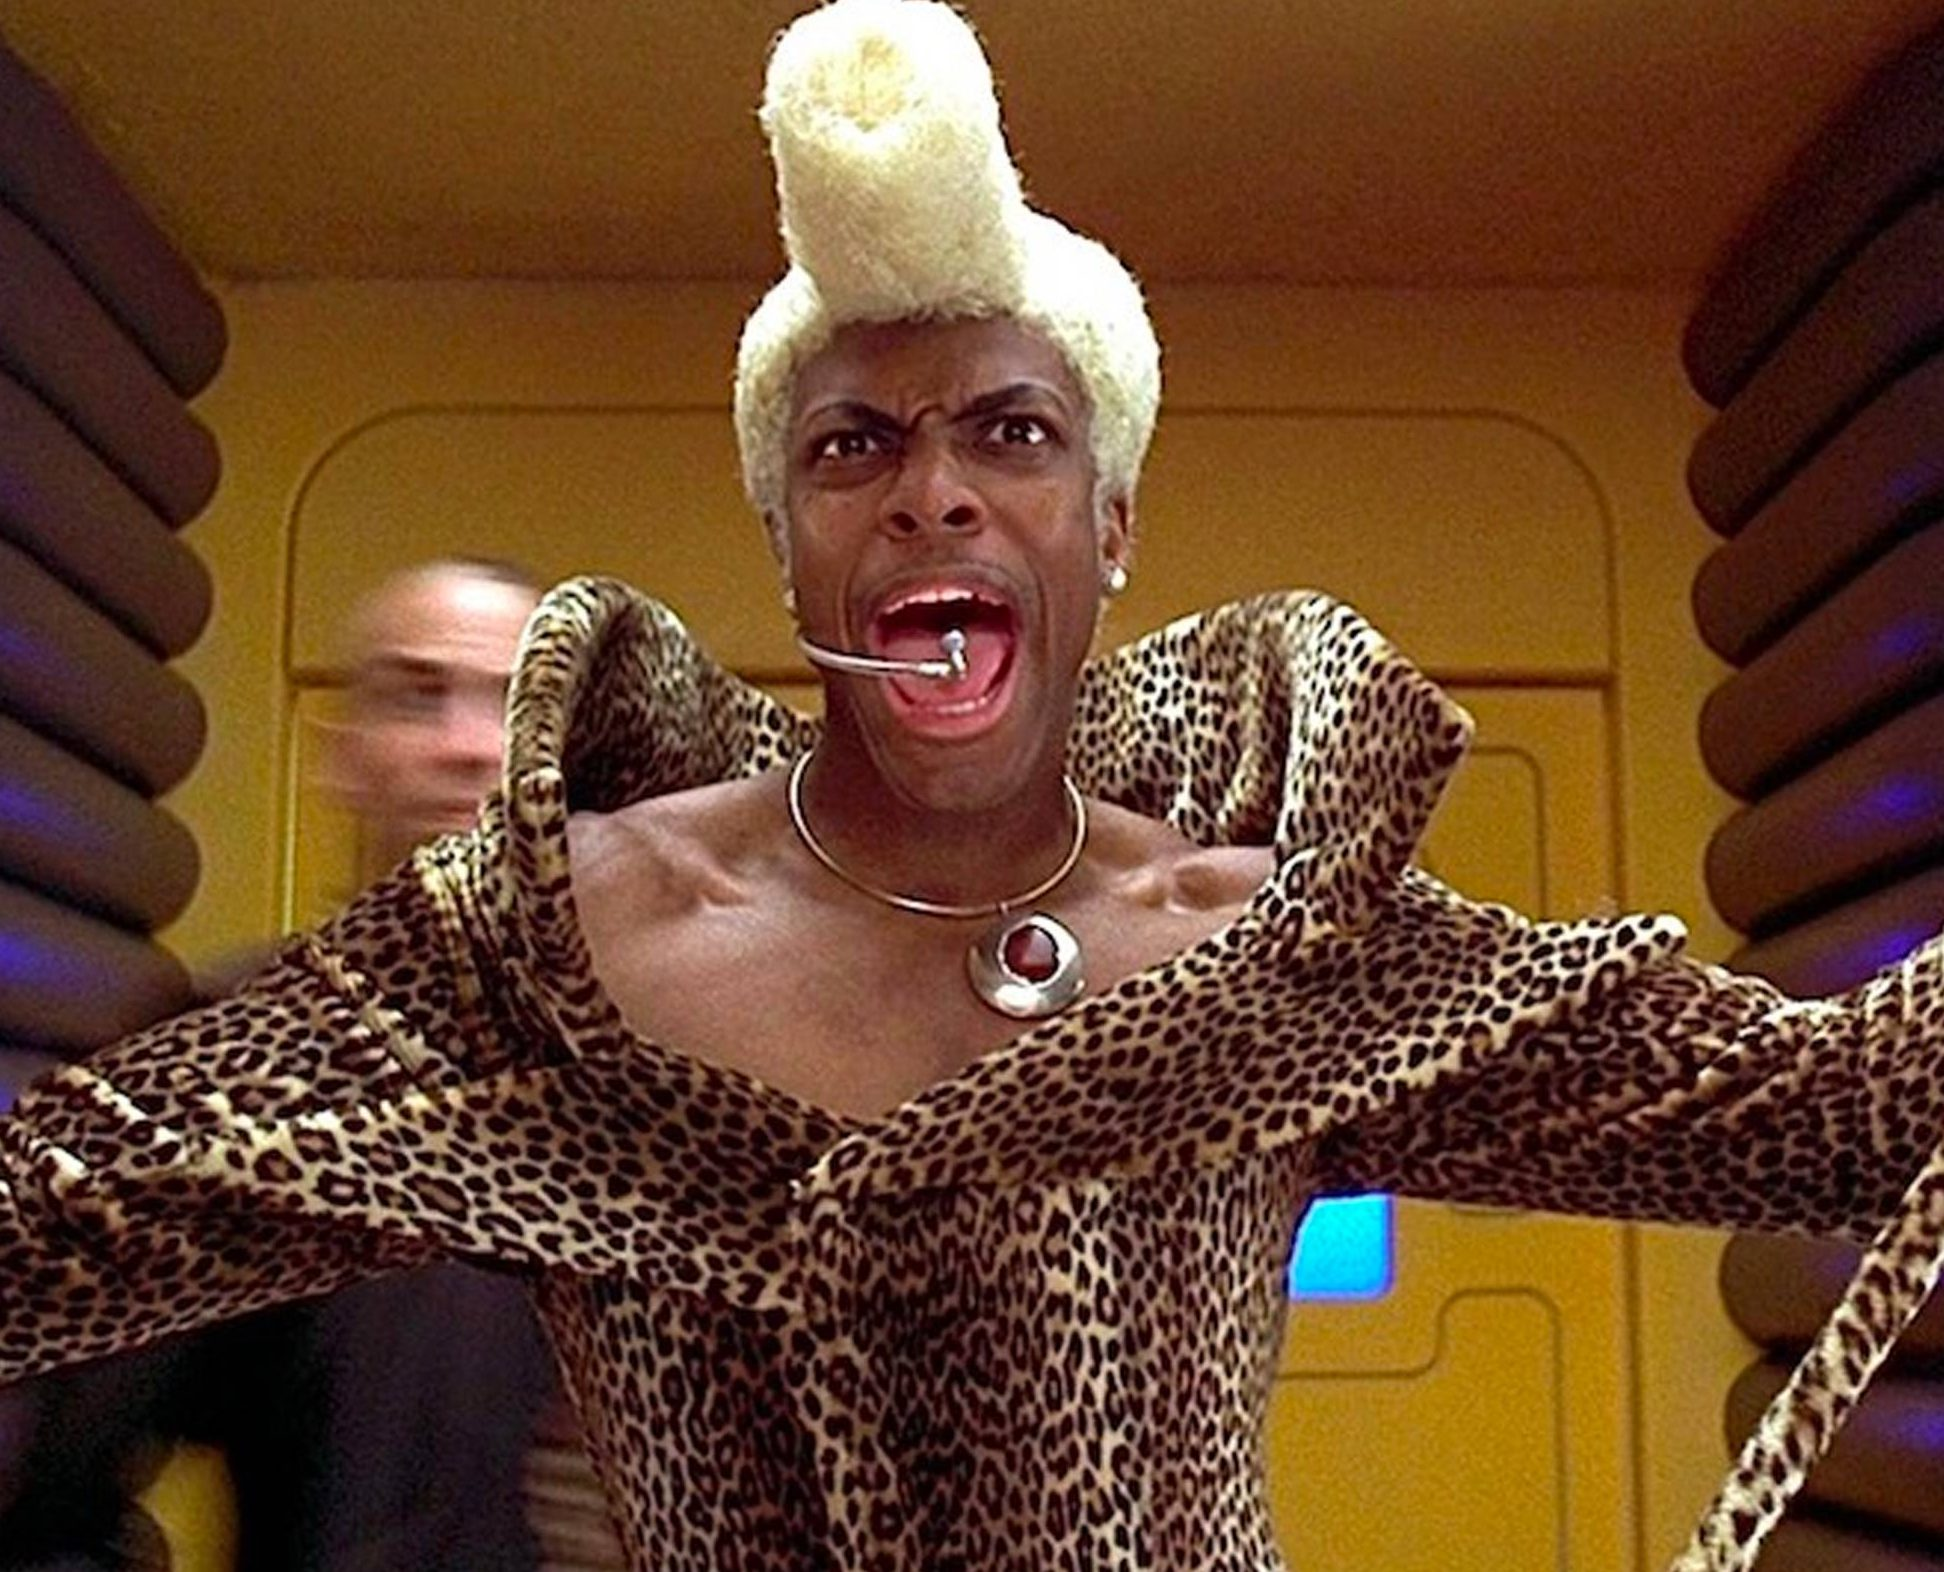 rudy rhod leopard outfit e1615998560855 Big Bada-Boom! 30 Things You Might Not Have Known About The Fifth Element